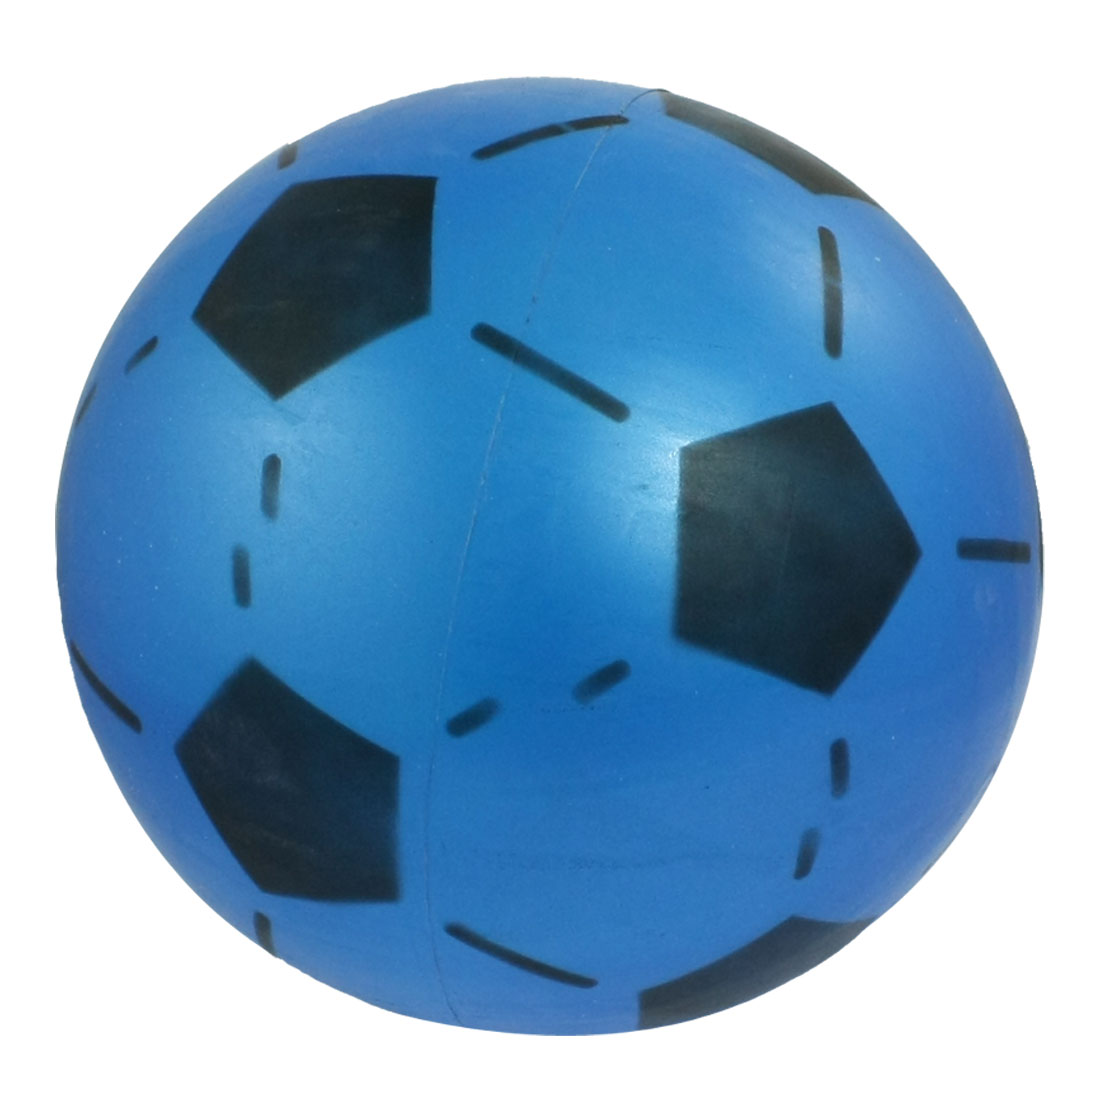 Blue Black 16.8cm Diameter Soft Plastic Football Toy for Child